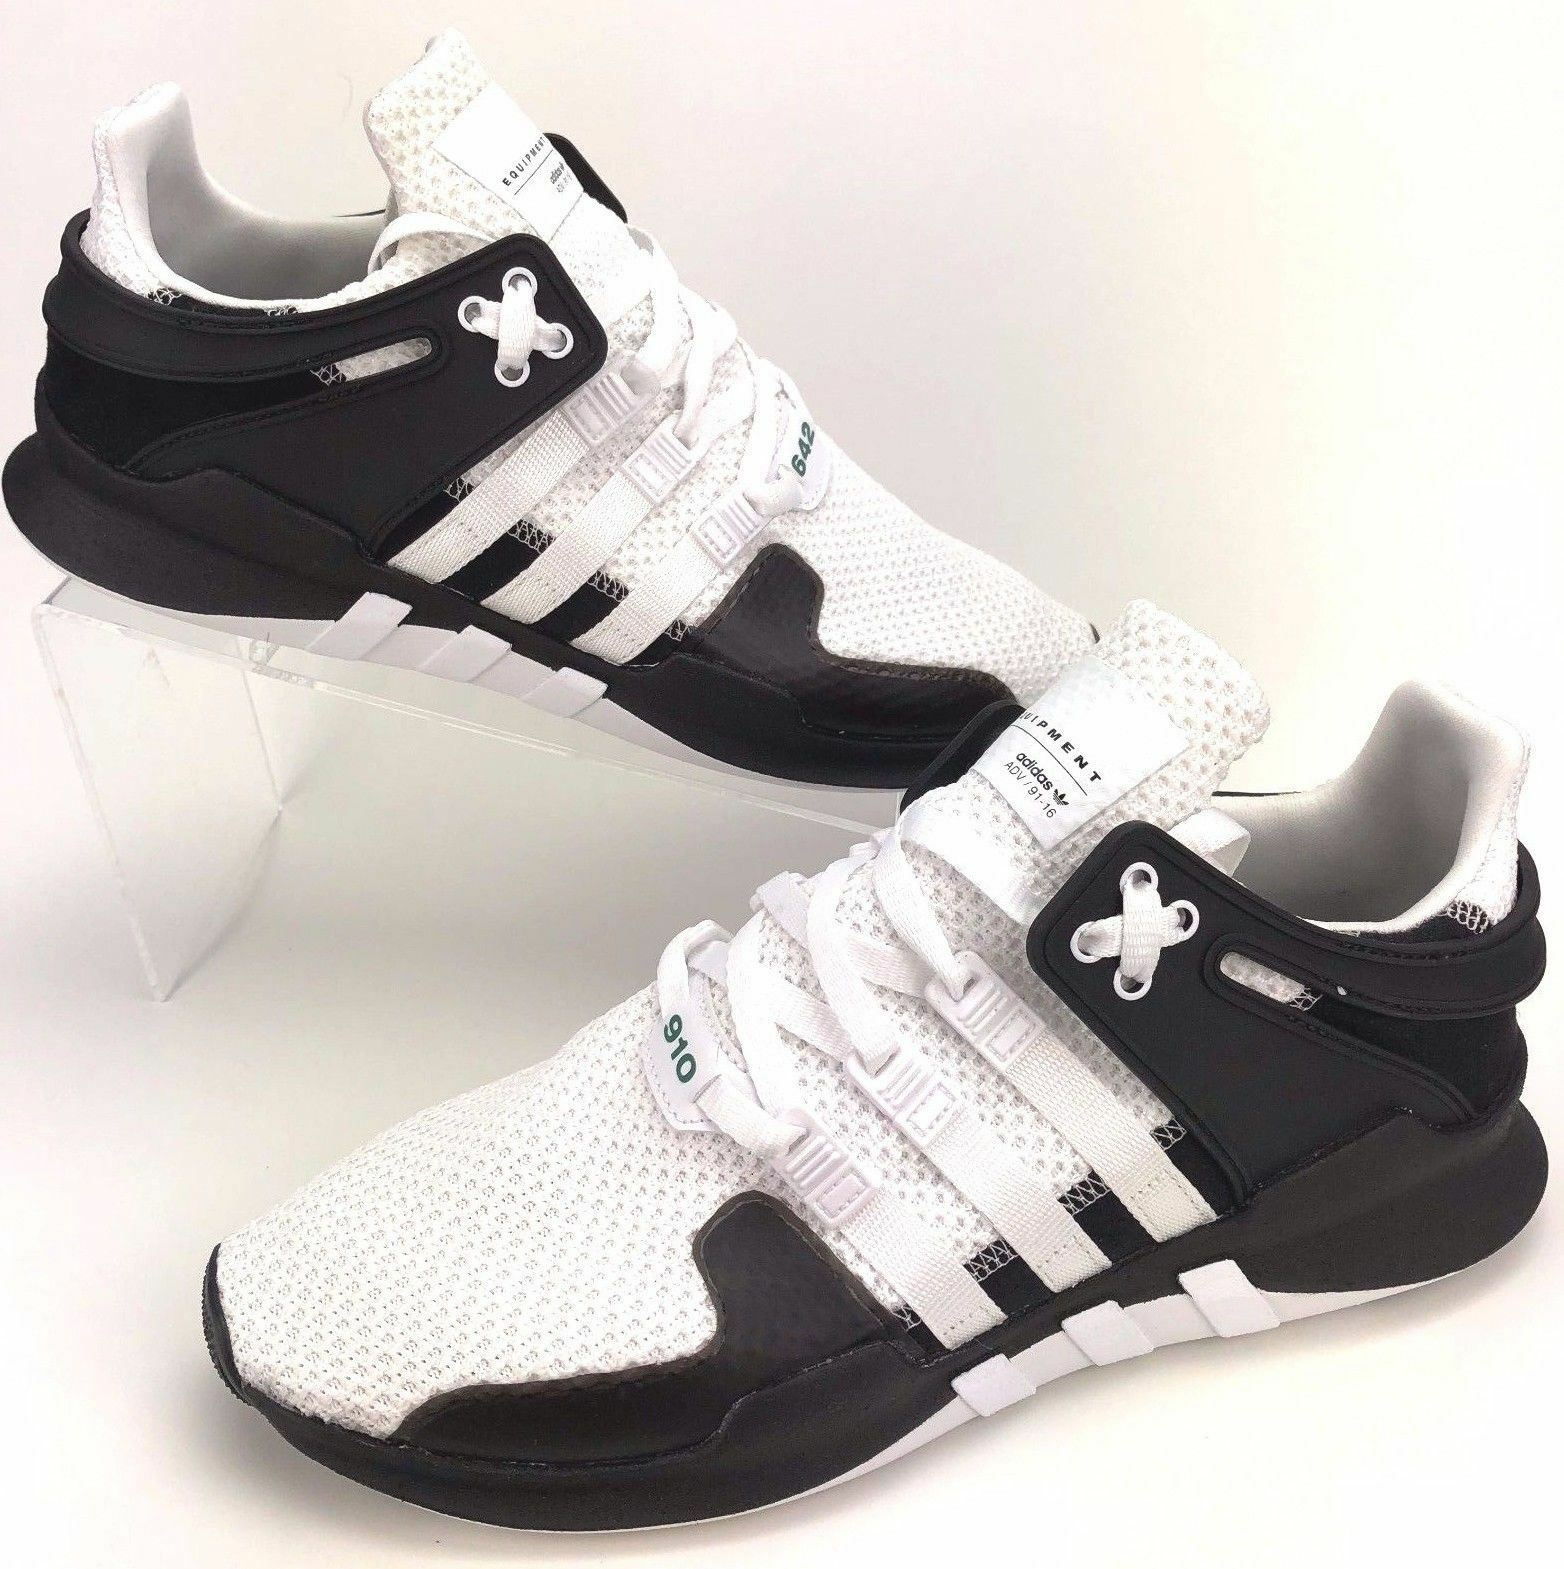 Adidas EQT Equipment Support ADV 91/16 - 910 Only 910 Made Consortium Kith 10.5